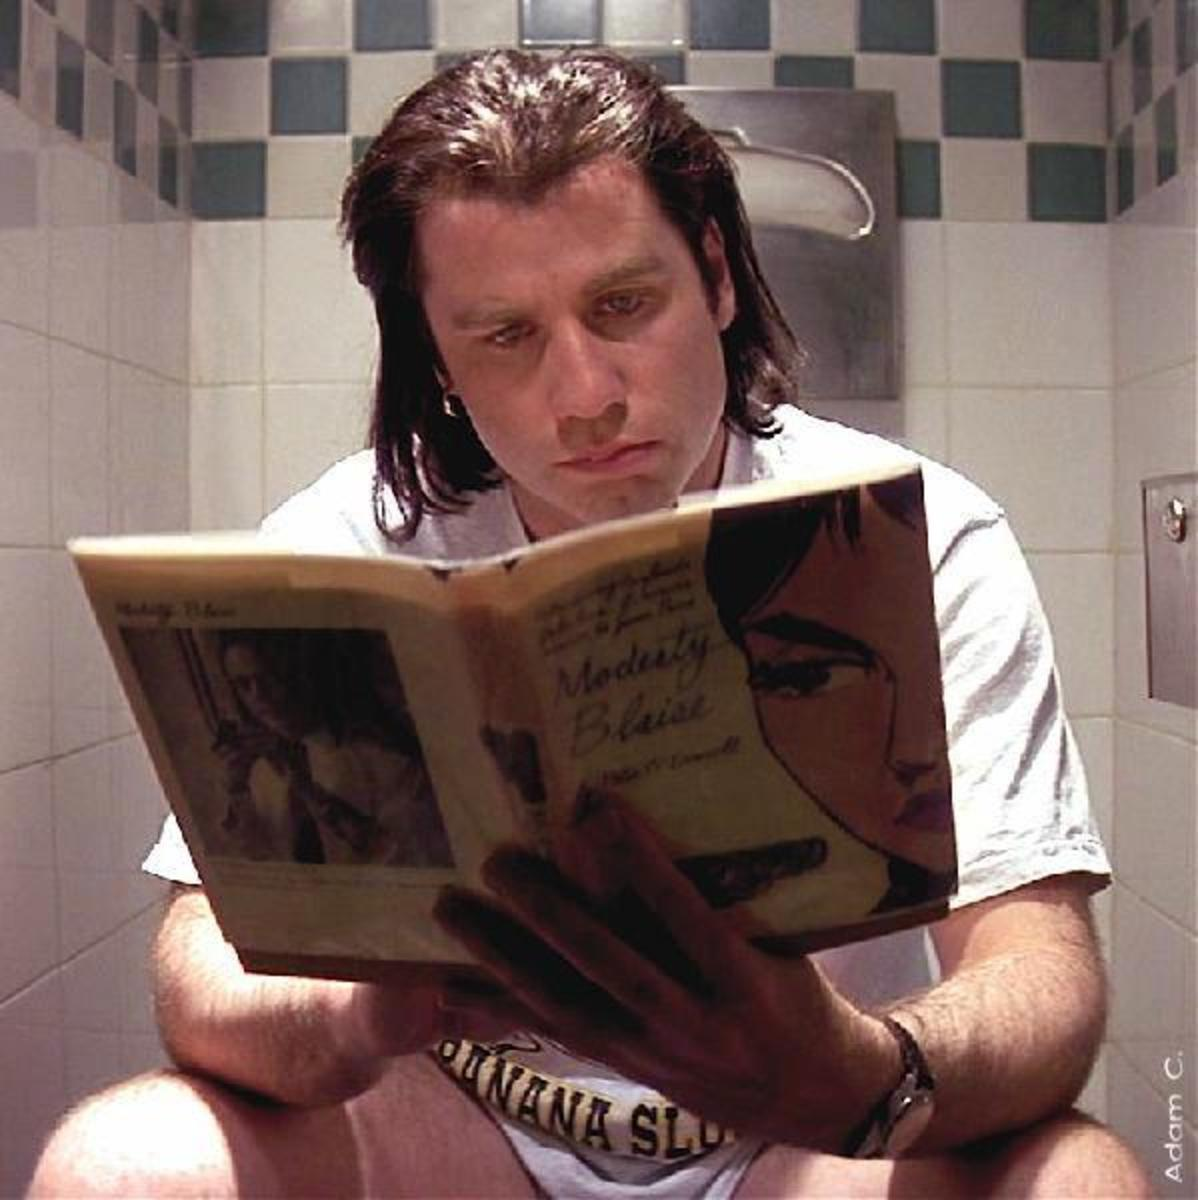 Vincent Vega reading Modesty Blaise in a memorable scene from Pulp fiction